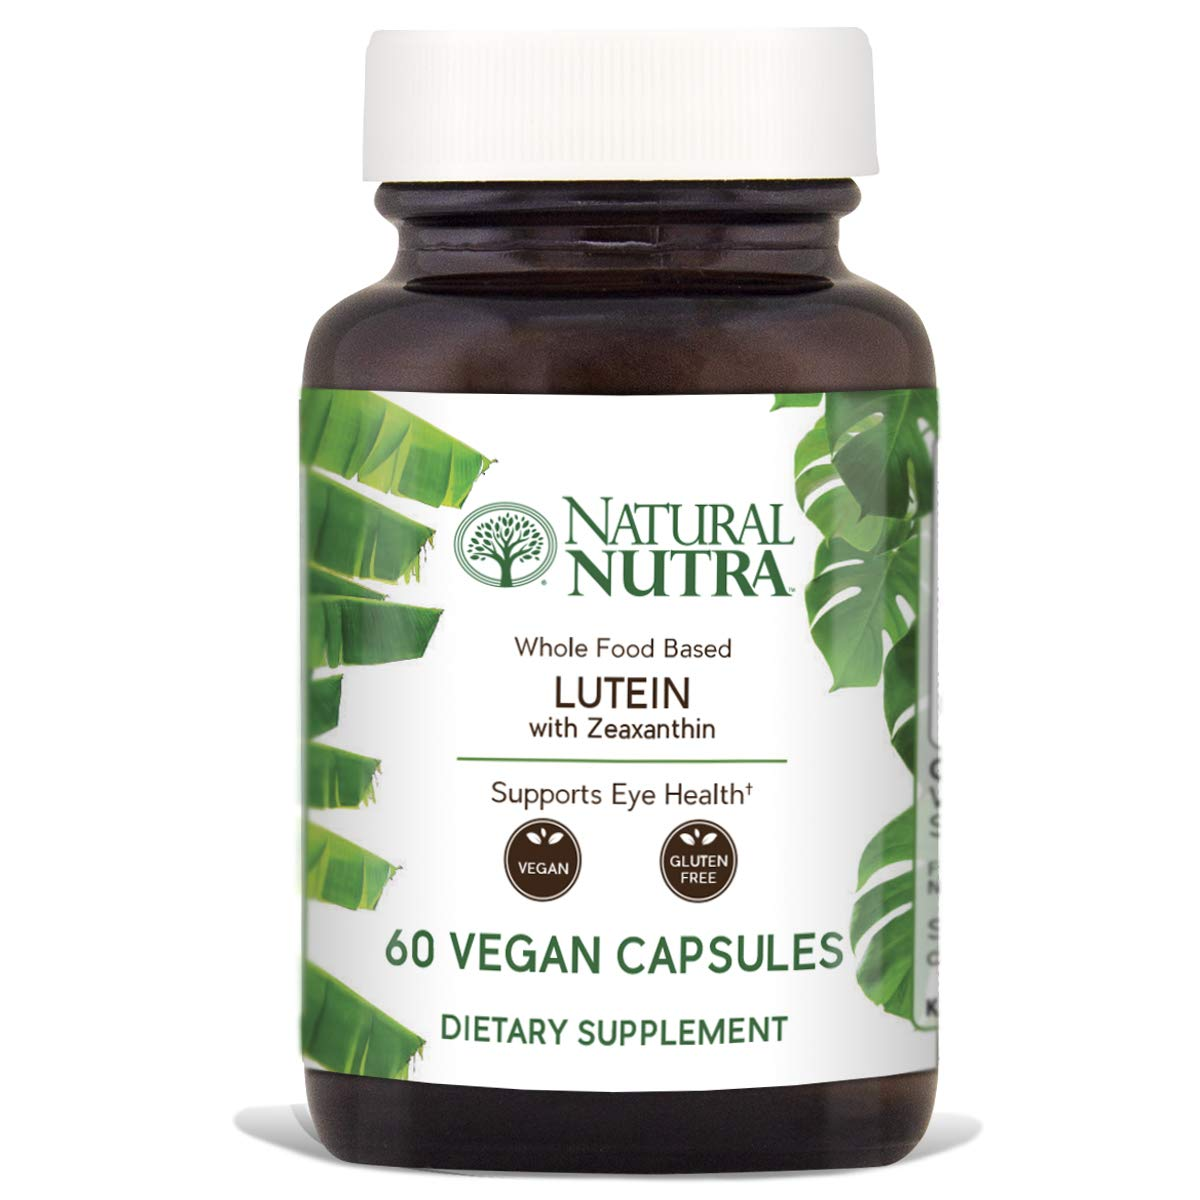 Natural Nutra Lutein and Zeaxanthin Supplement, Whole Food Formula, Soy Free, Vegan and Vegetarian, LutemaxTM 2020, 20mg, 60 Capsules